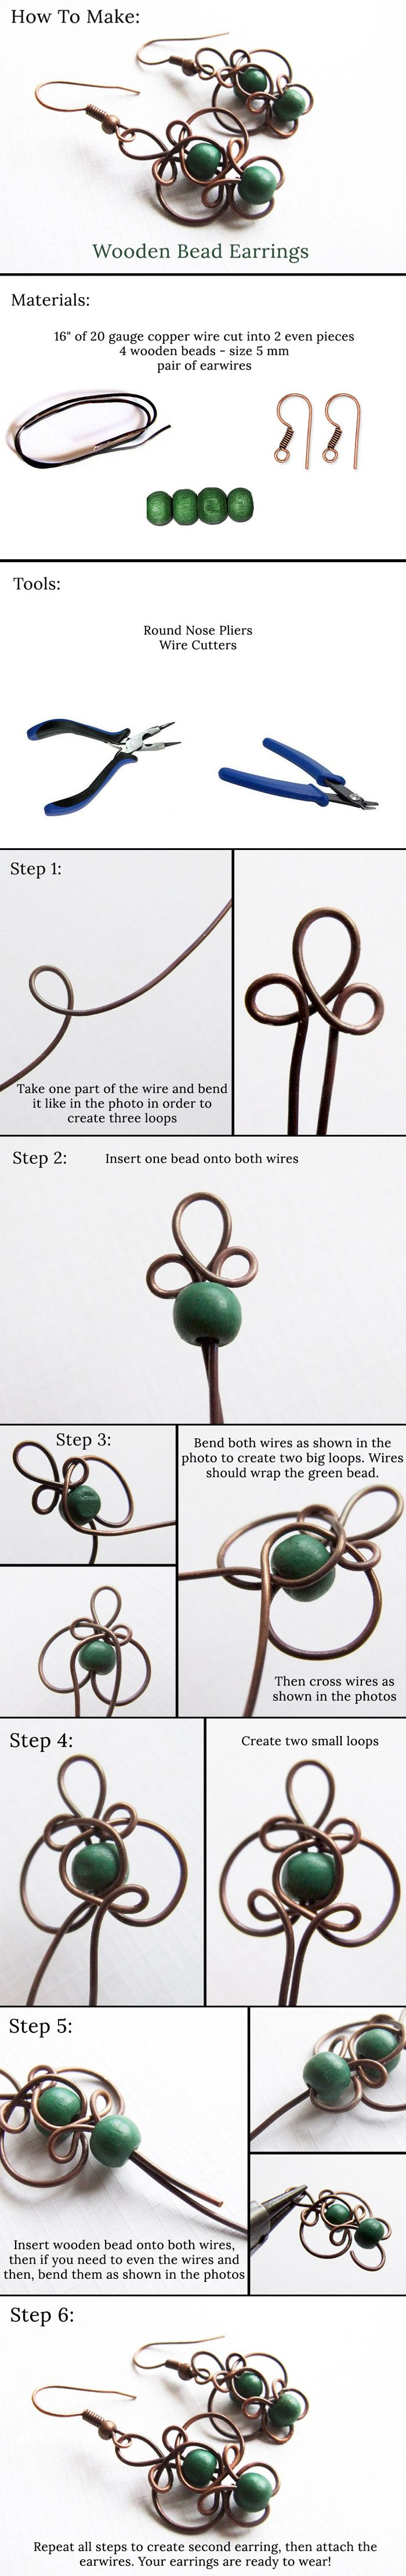 How To Make Wooden Bead Earrings!!!